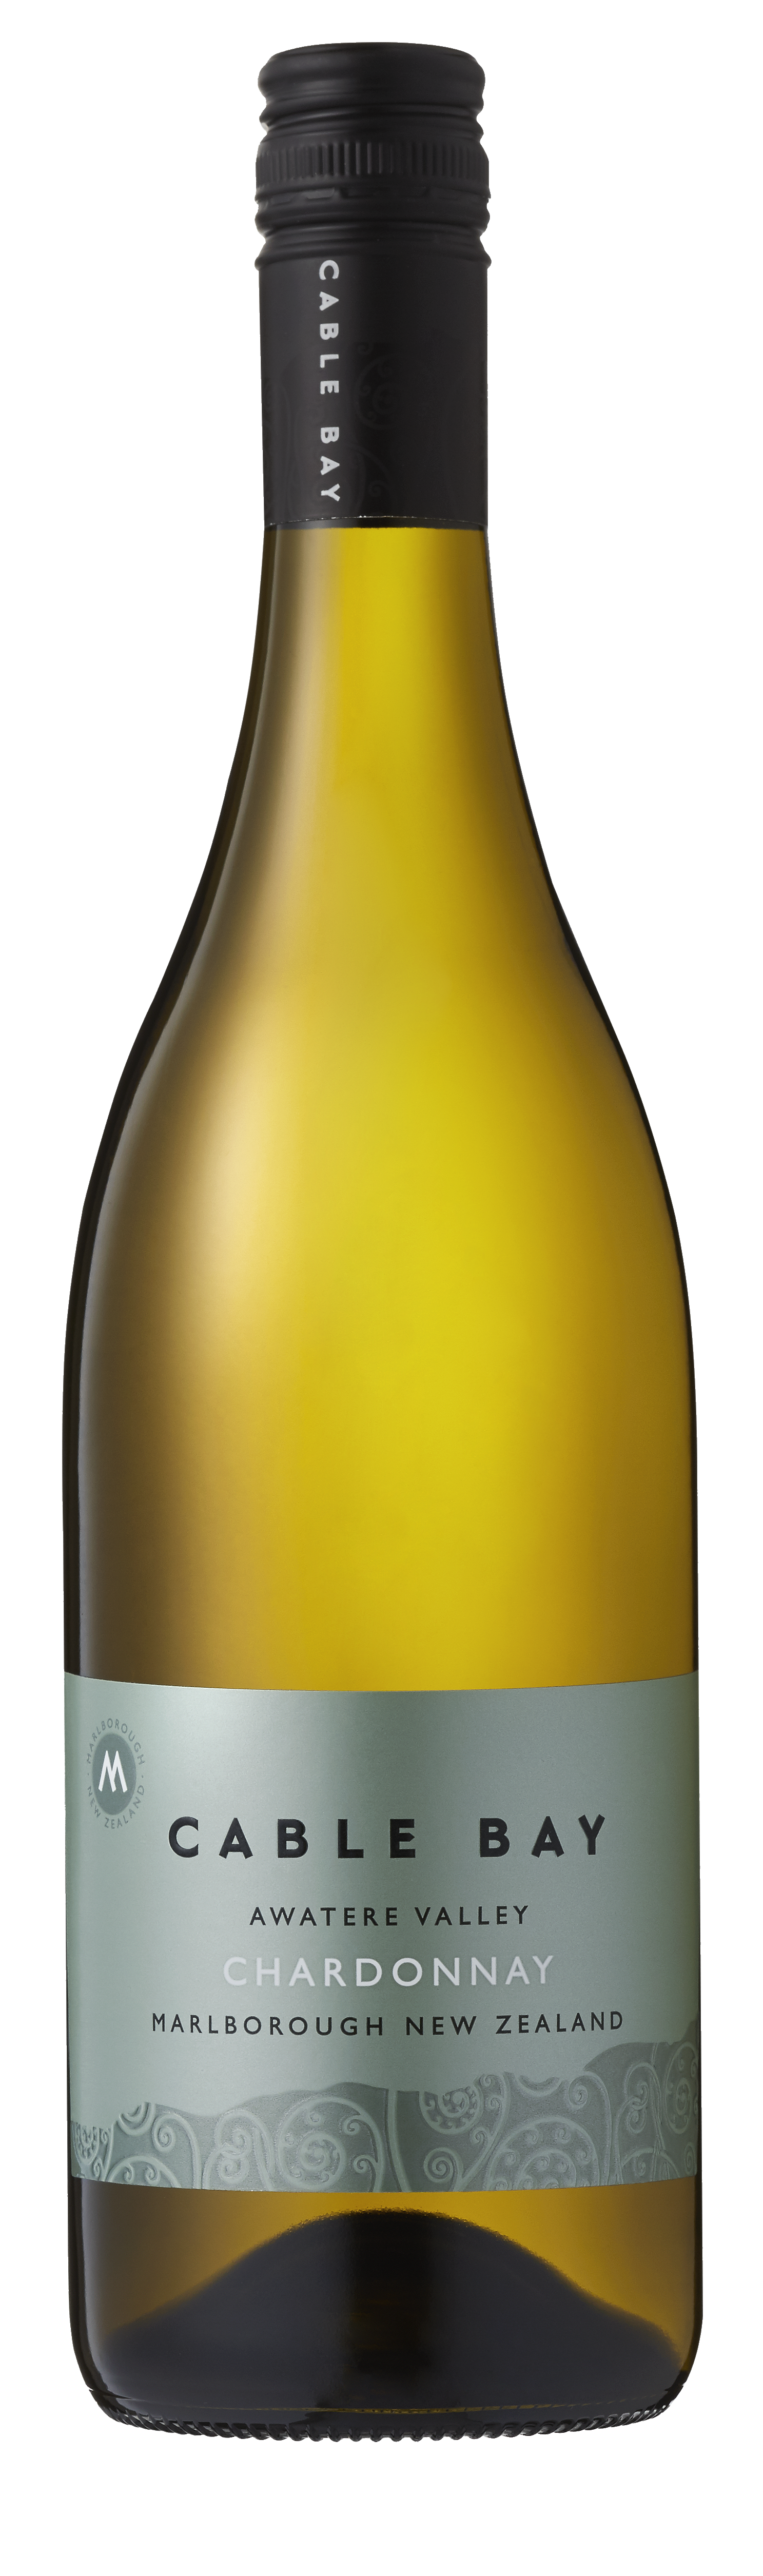 Cable bay Chardonnay M